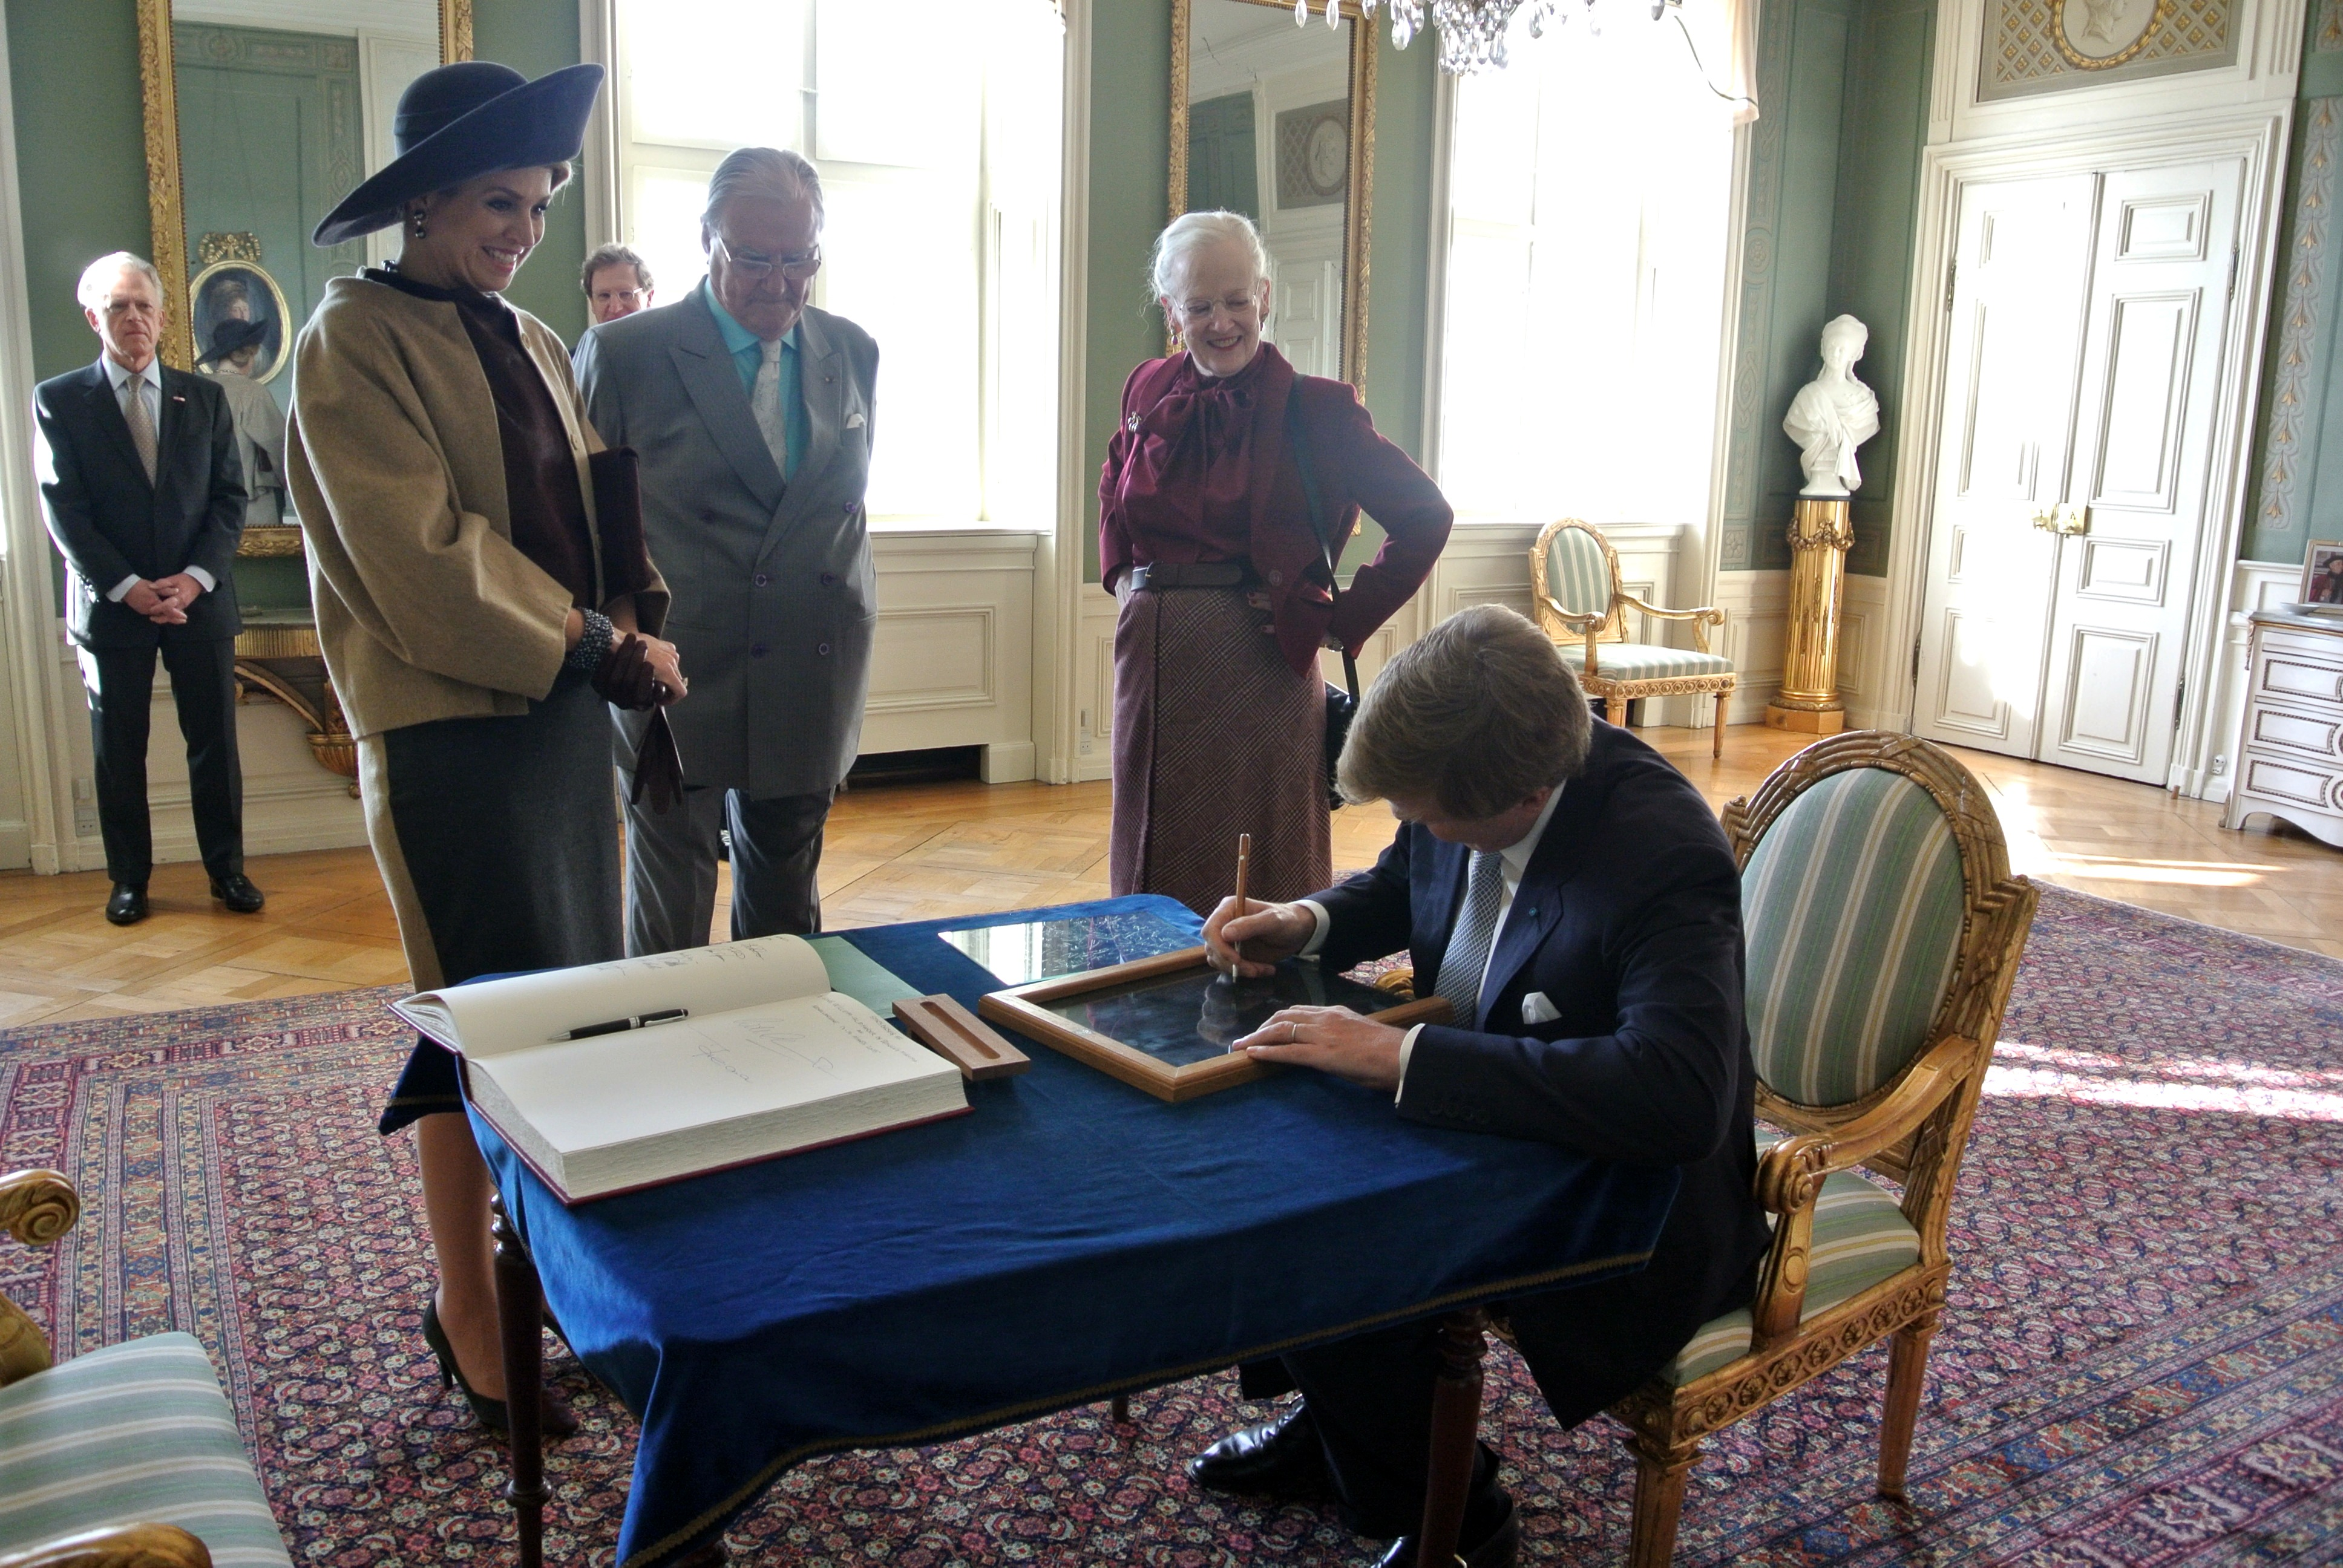 Engraving a window pane with their signature is a tradition at Fredensborg Slot when royal guests stay overnight. Here the Dutch King and Queen during their visit in 2015. Picture: Chritian Meyer, Kongehuset.